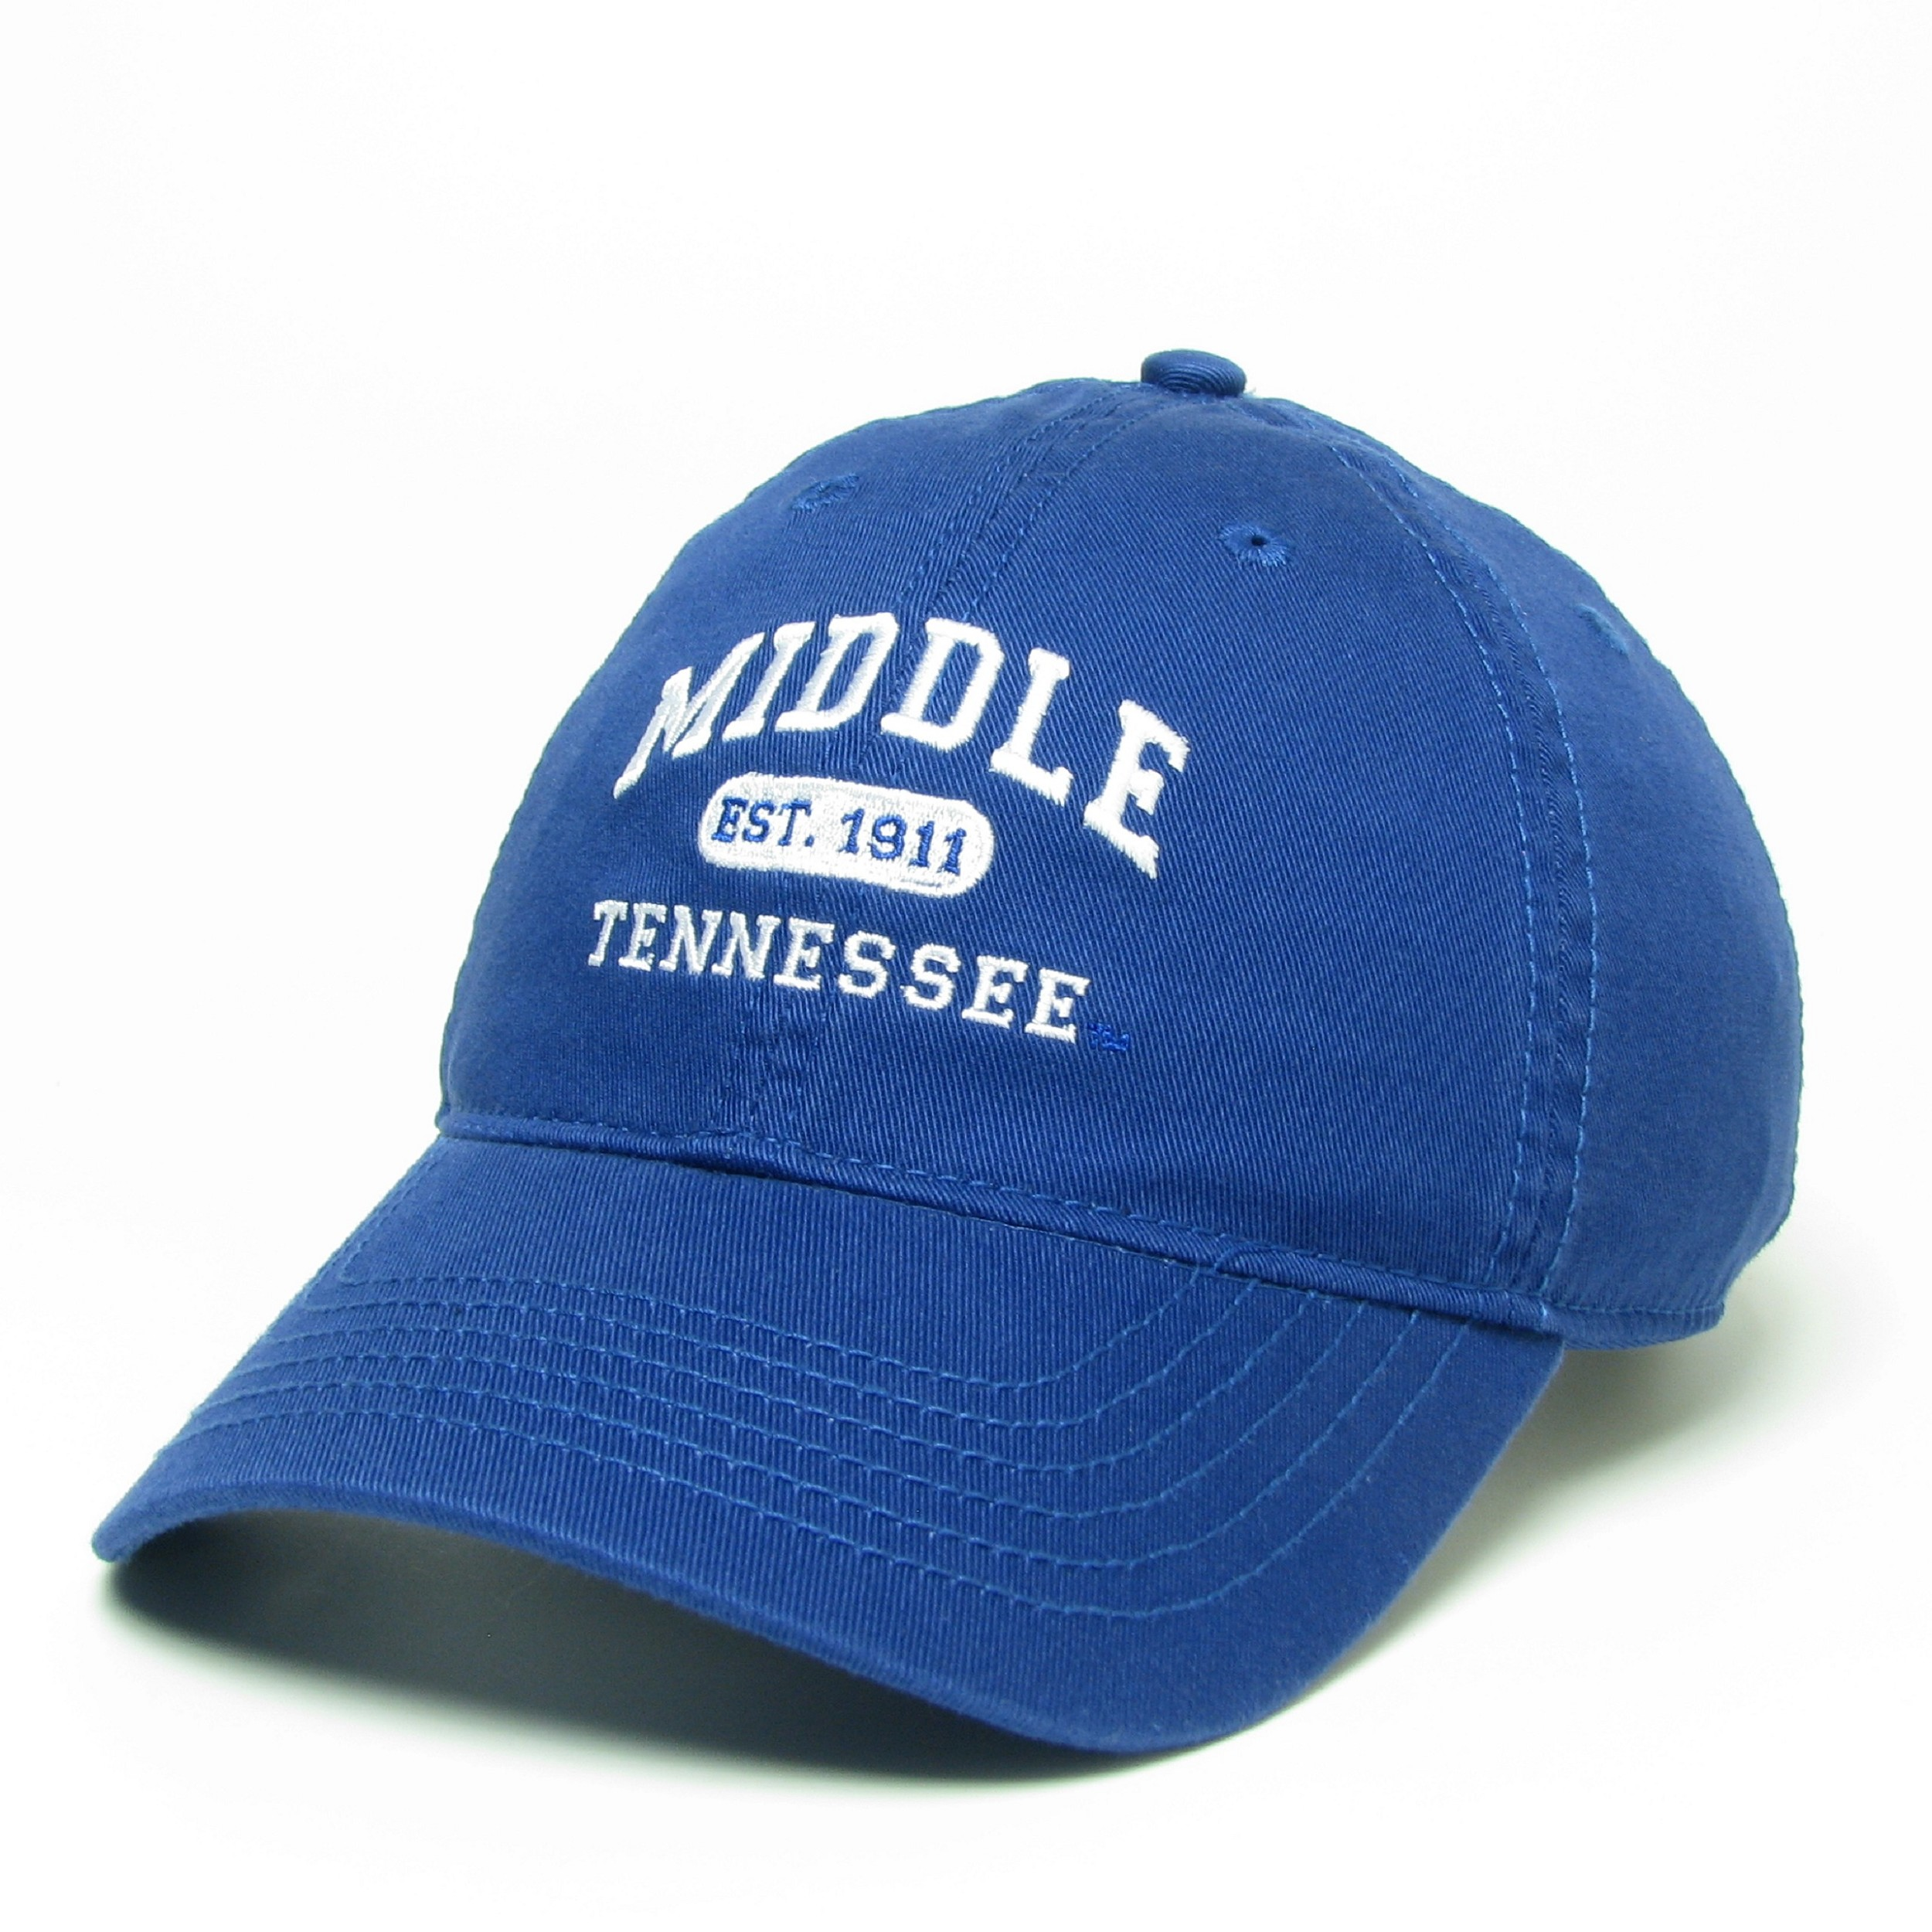 Middle Tennessee Arched Est. 1911 Relaxed Twill Hat